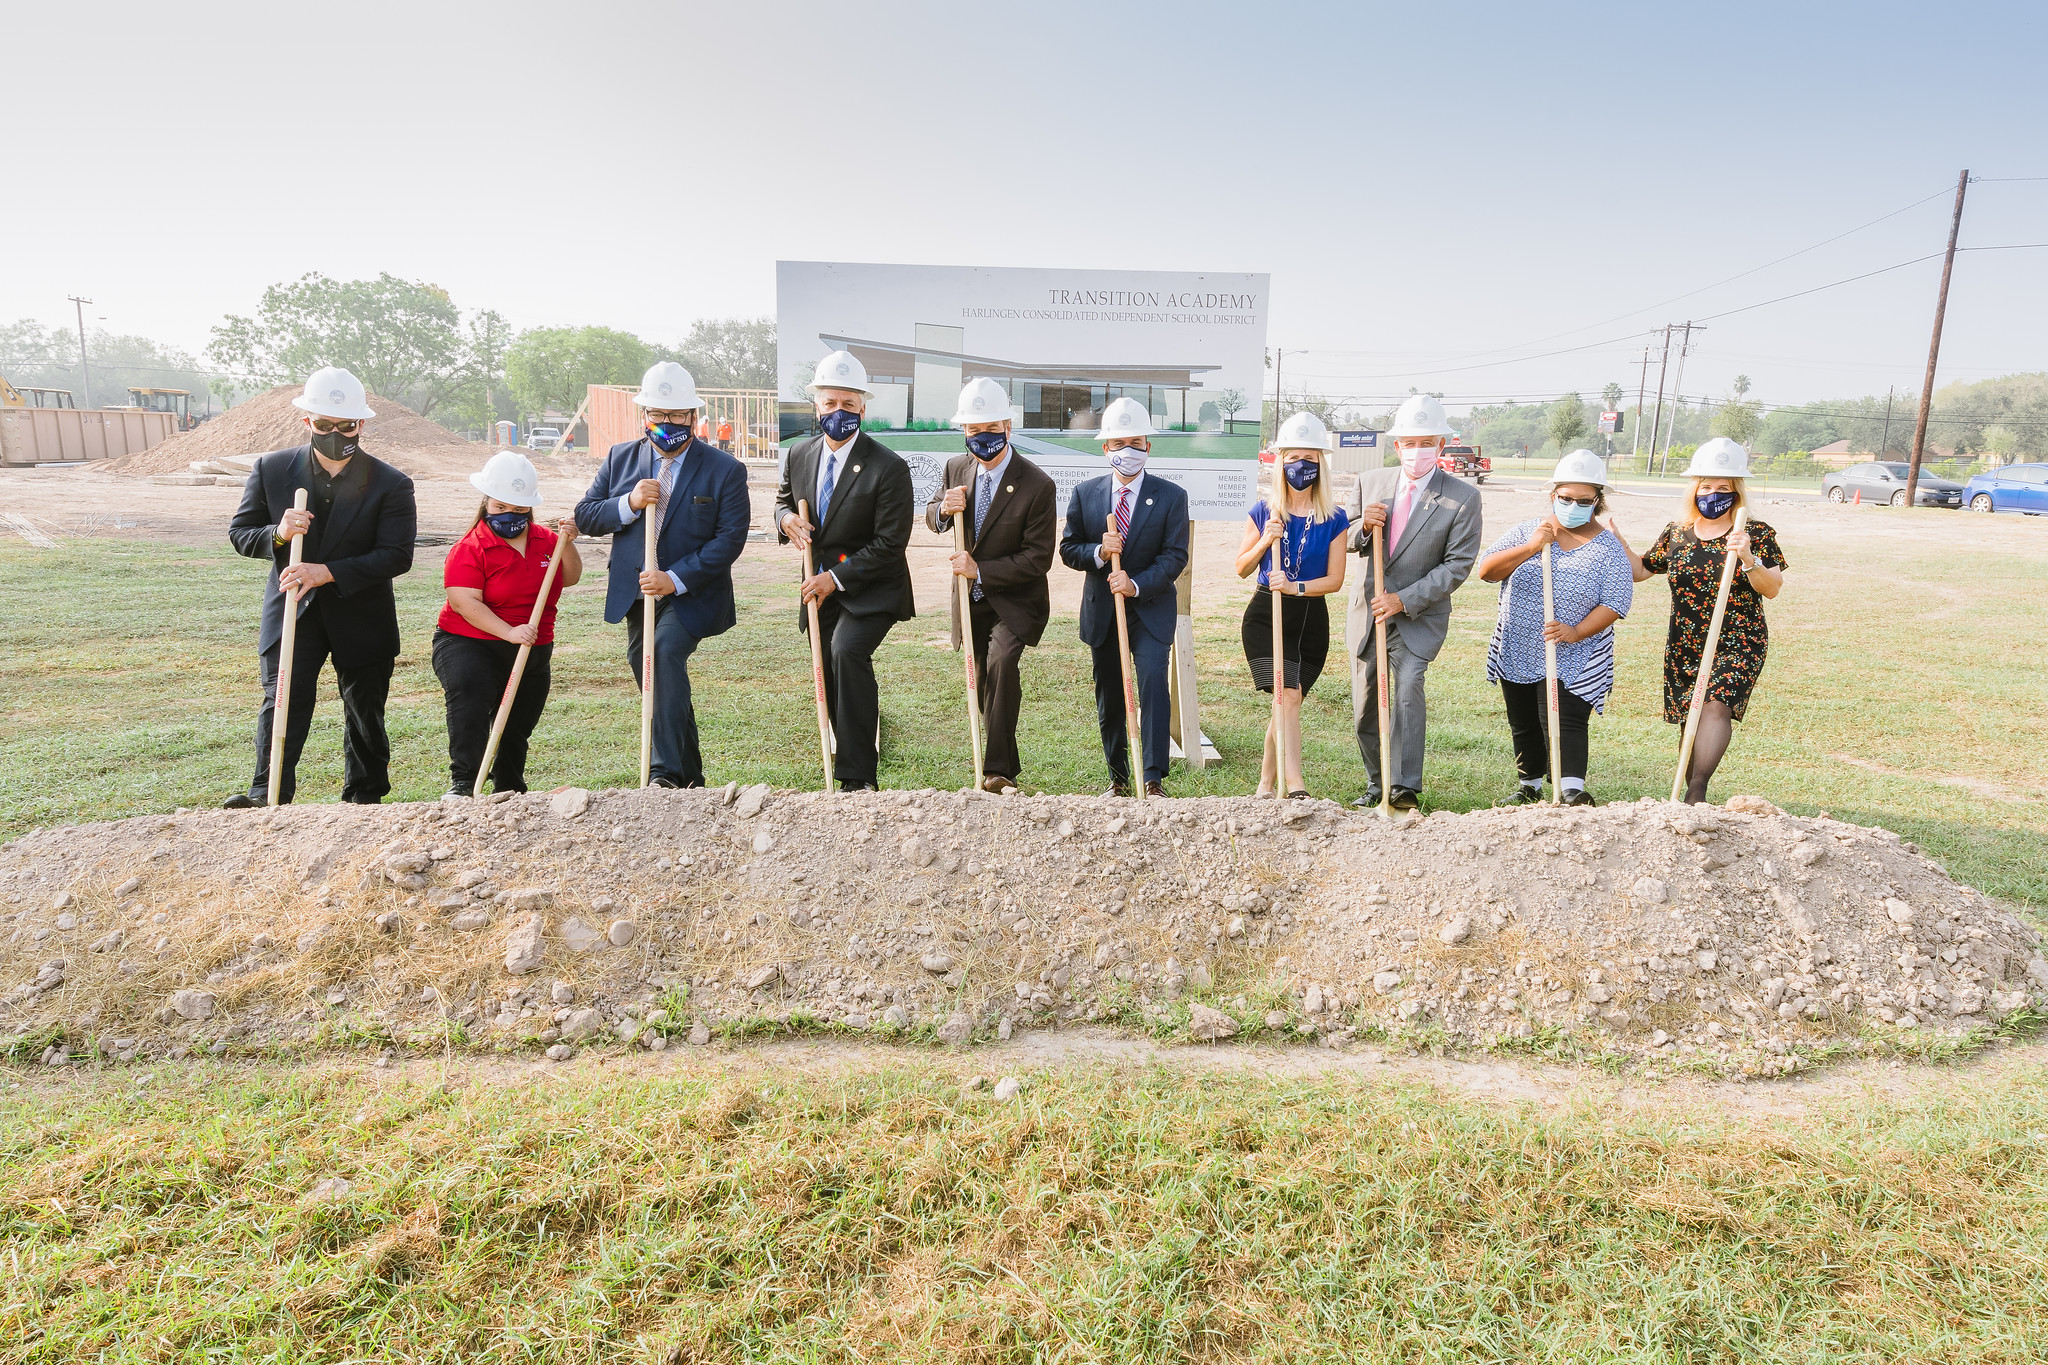 HCISD breaks ground on Transition Academy